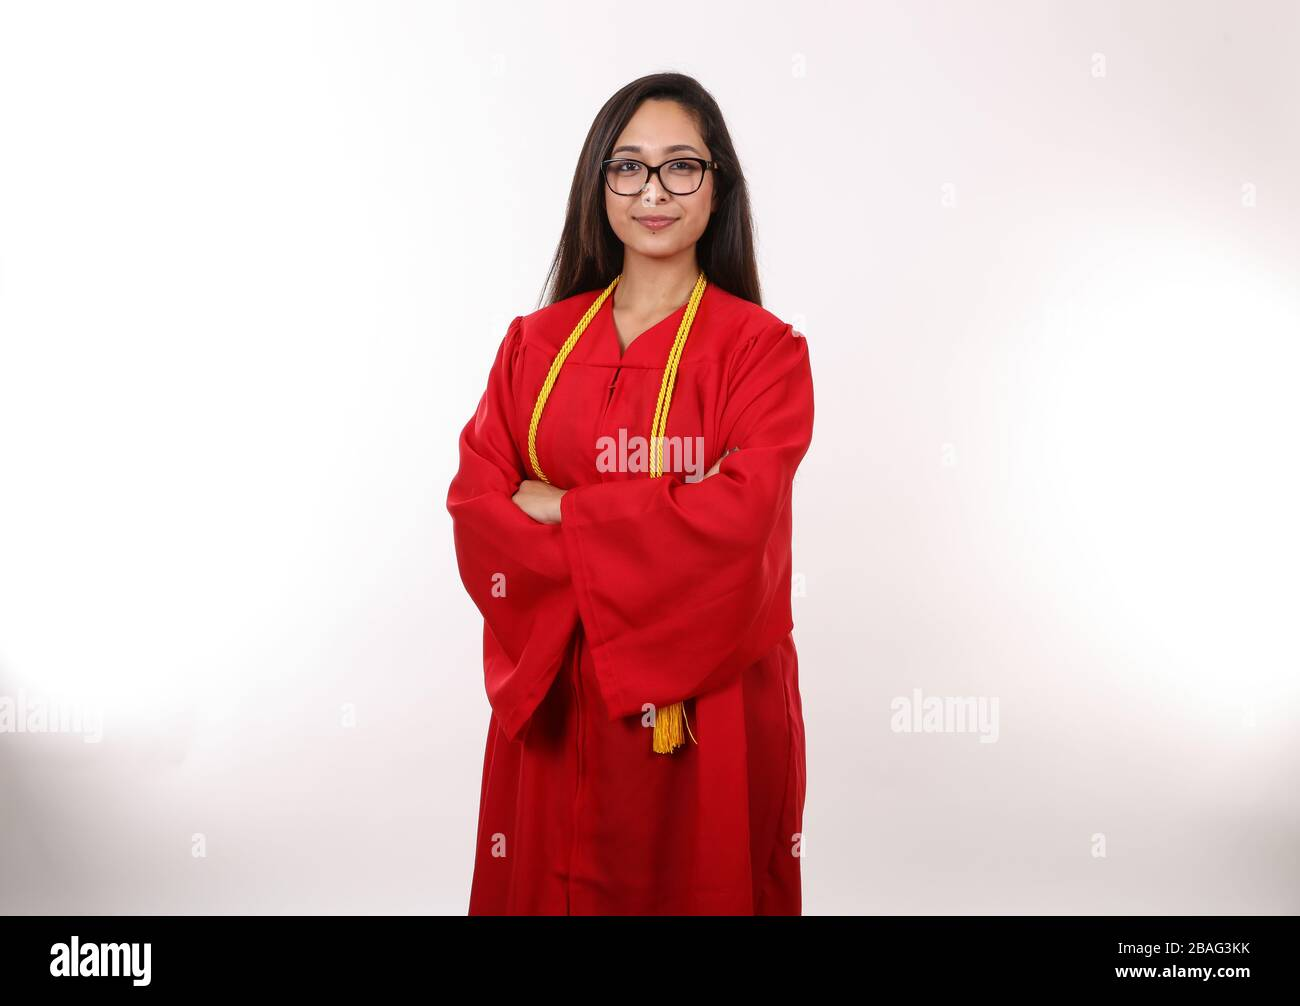 A recent female graduate poses for a portrait. Stock Photo